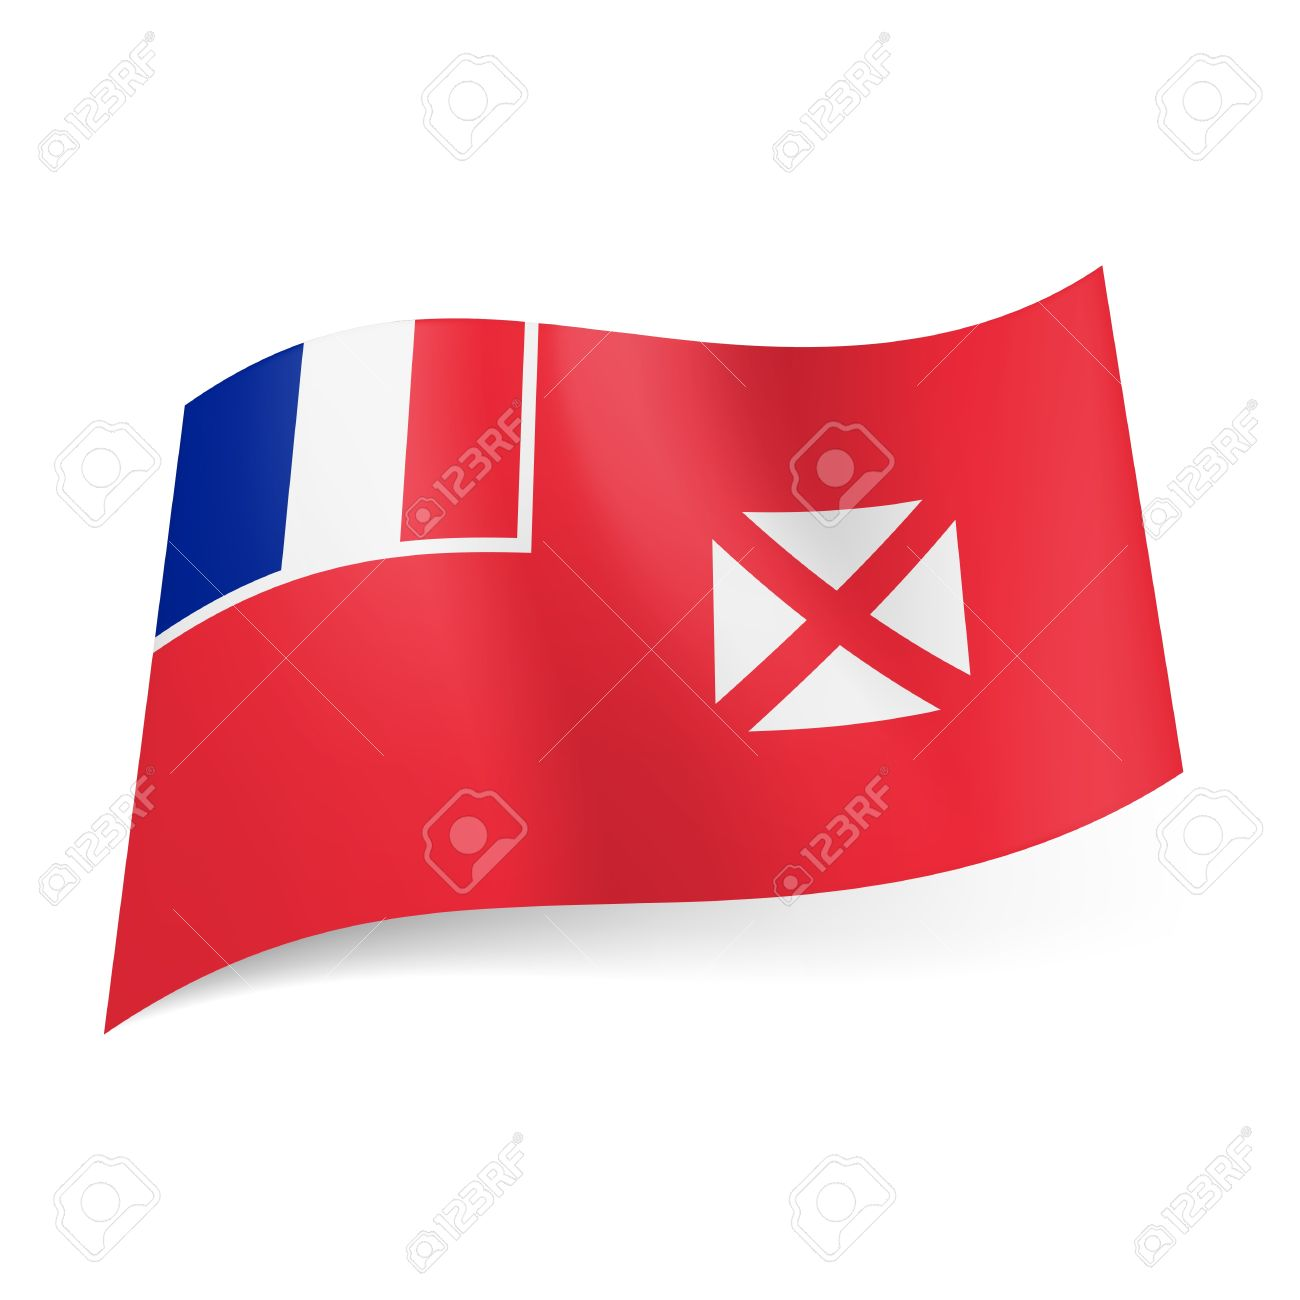 Flag Of Wallis And Futuna: French Flag And White Square With.